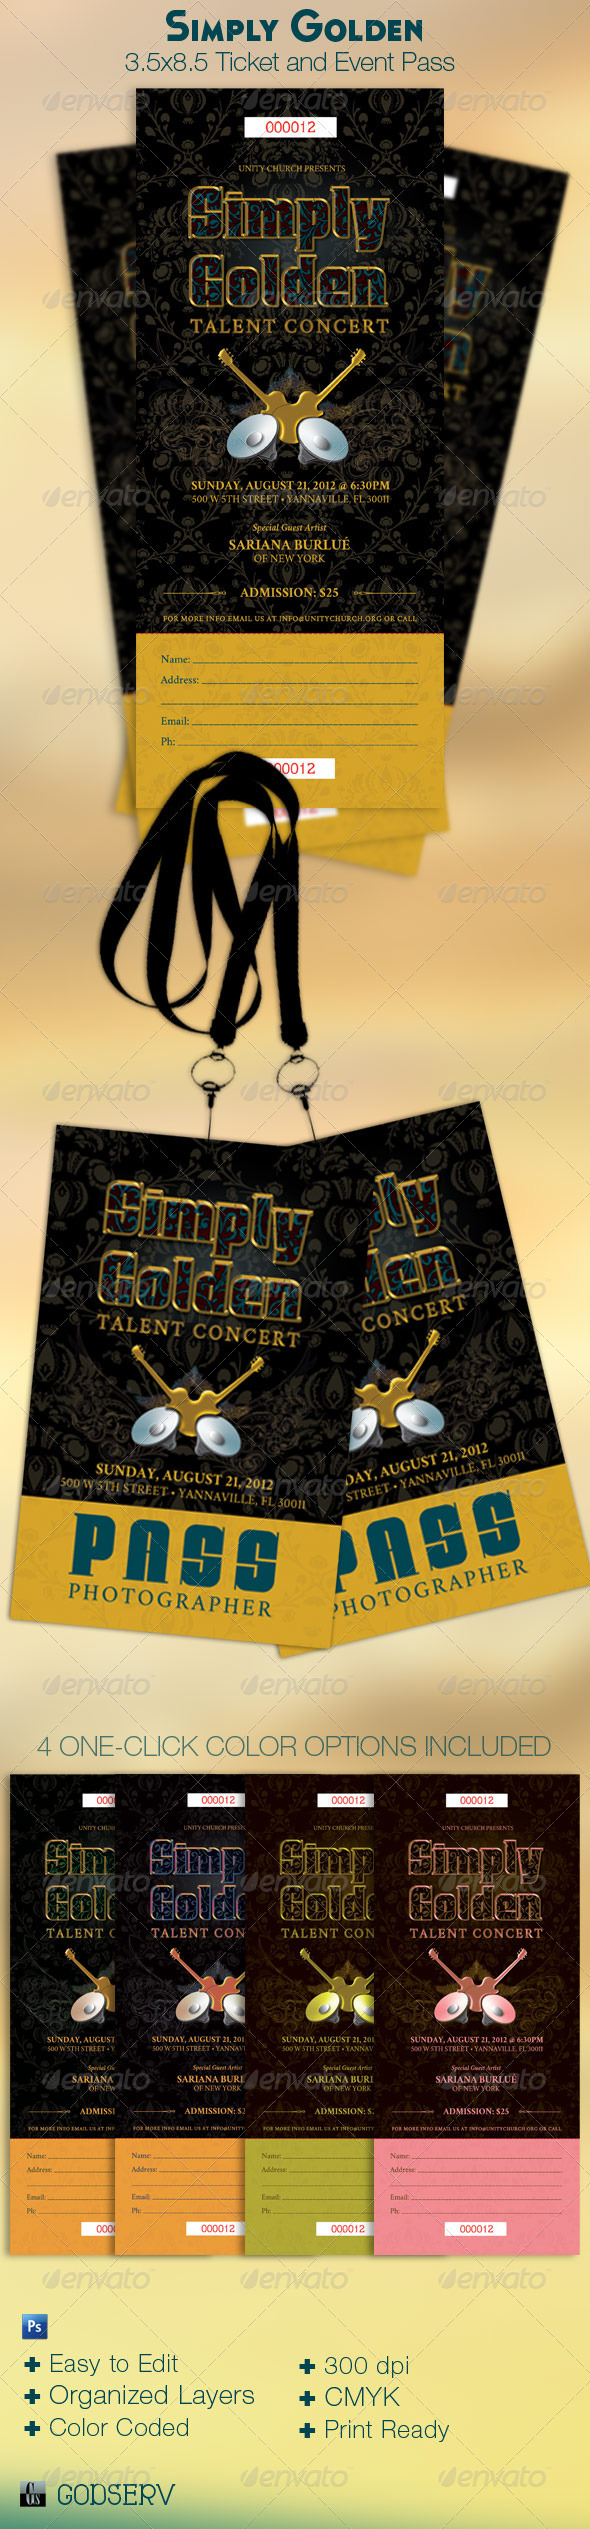 Simply Golden Ticket and Event Pass Template - Miscellaneous Print Templates